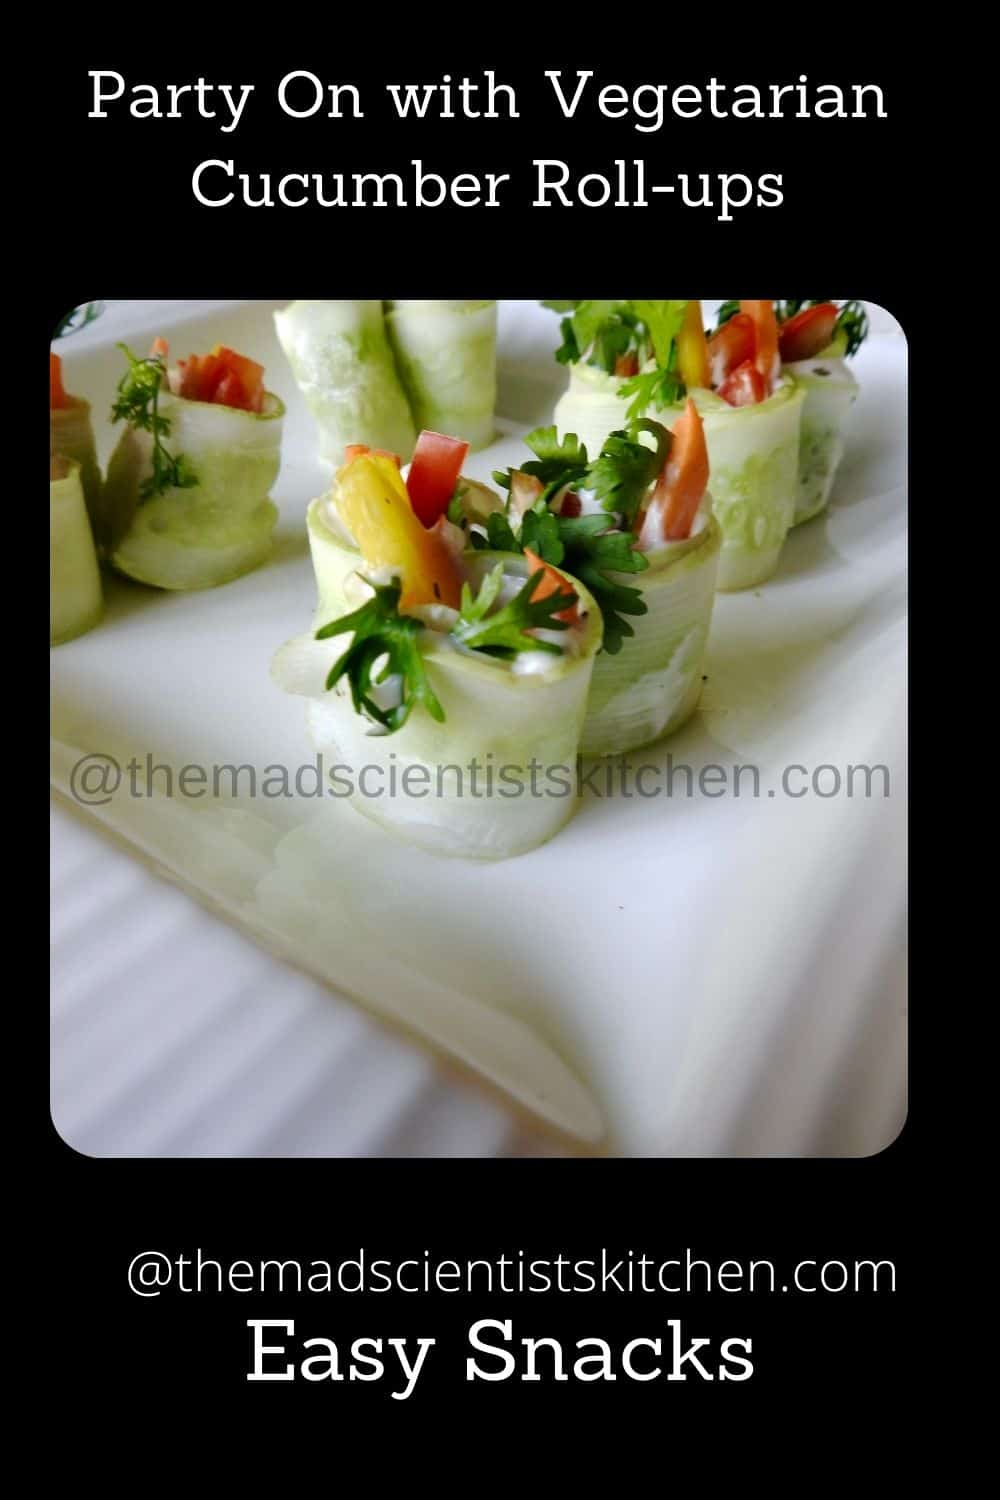 yum appetisers fresh and delicious veggies rolled up in cucumber slices